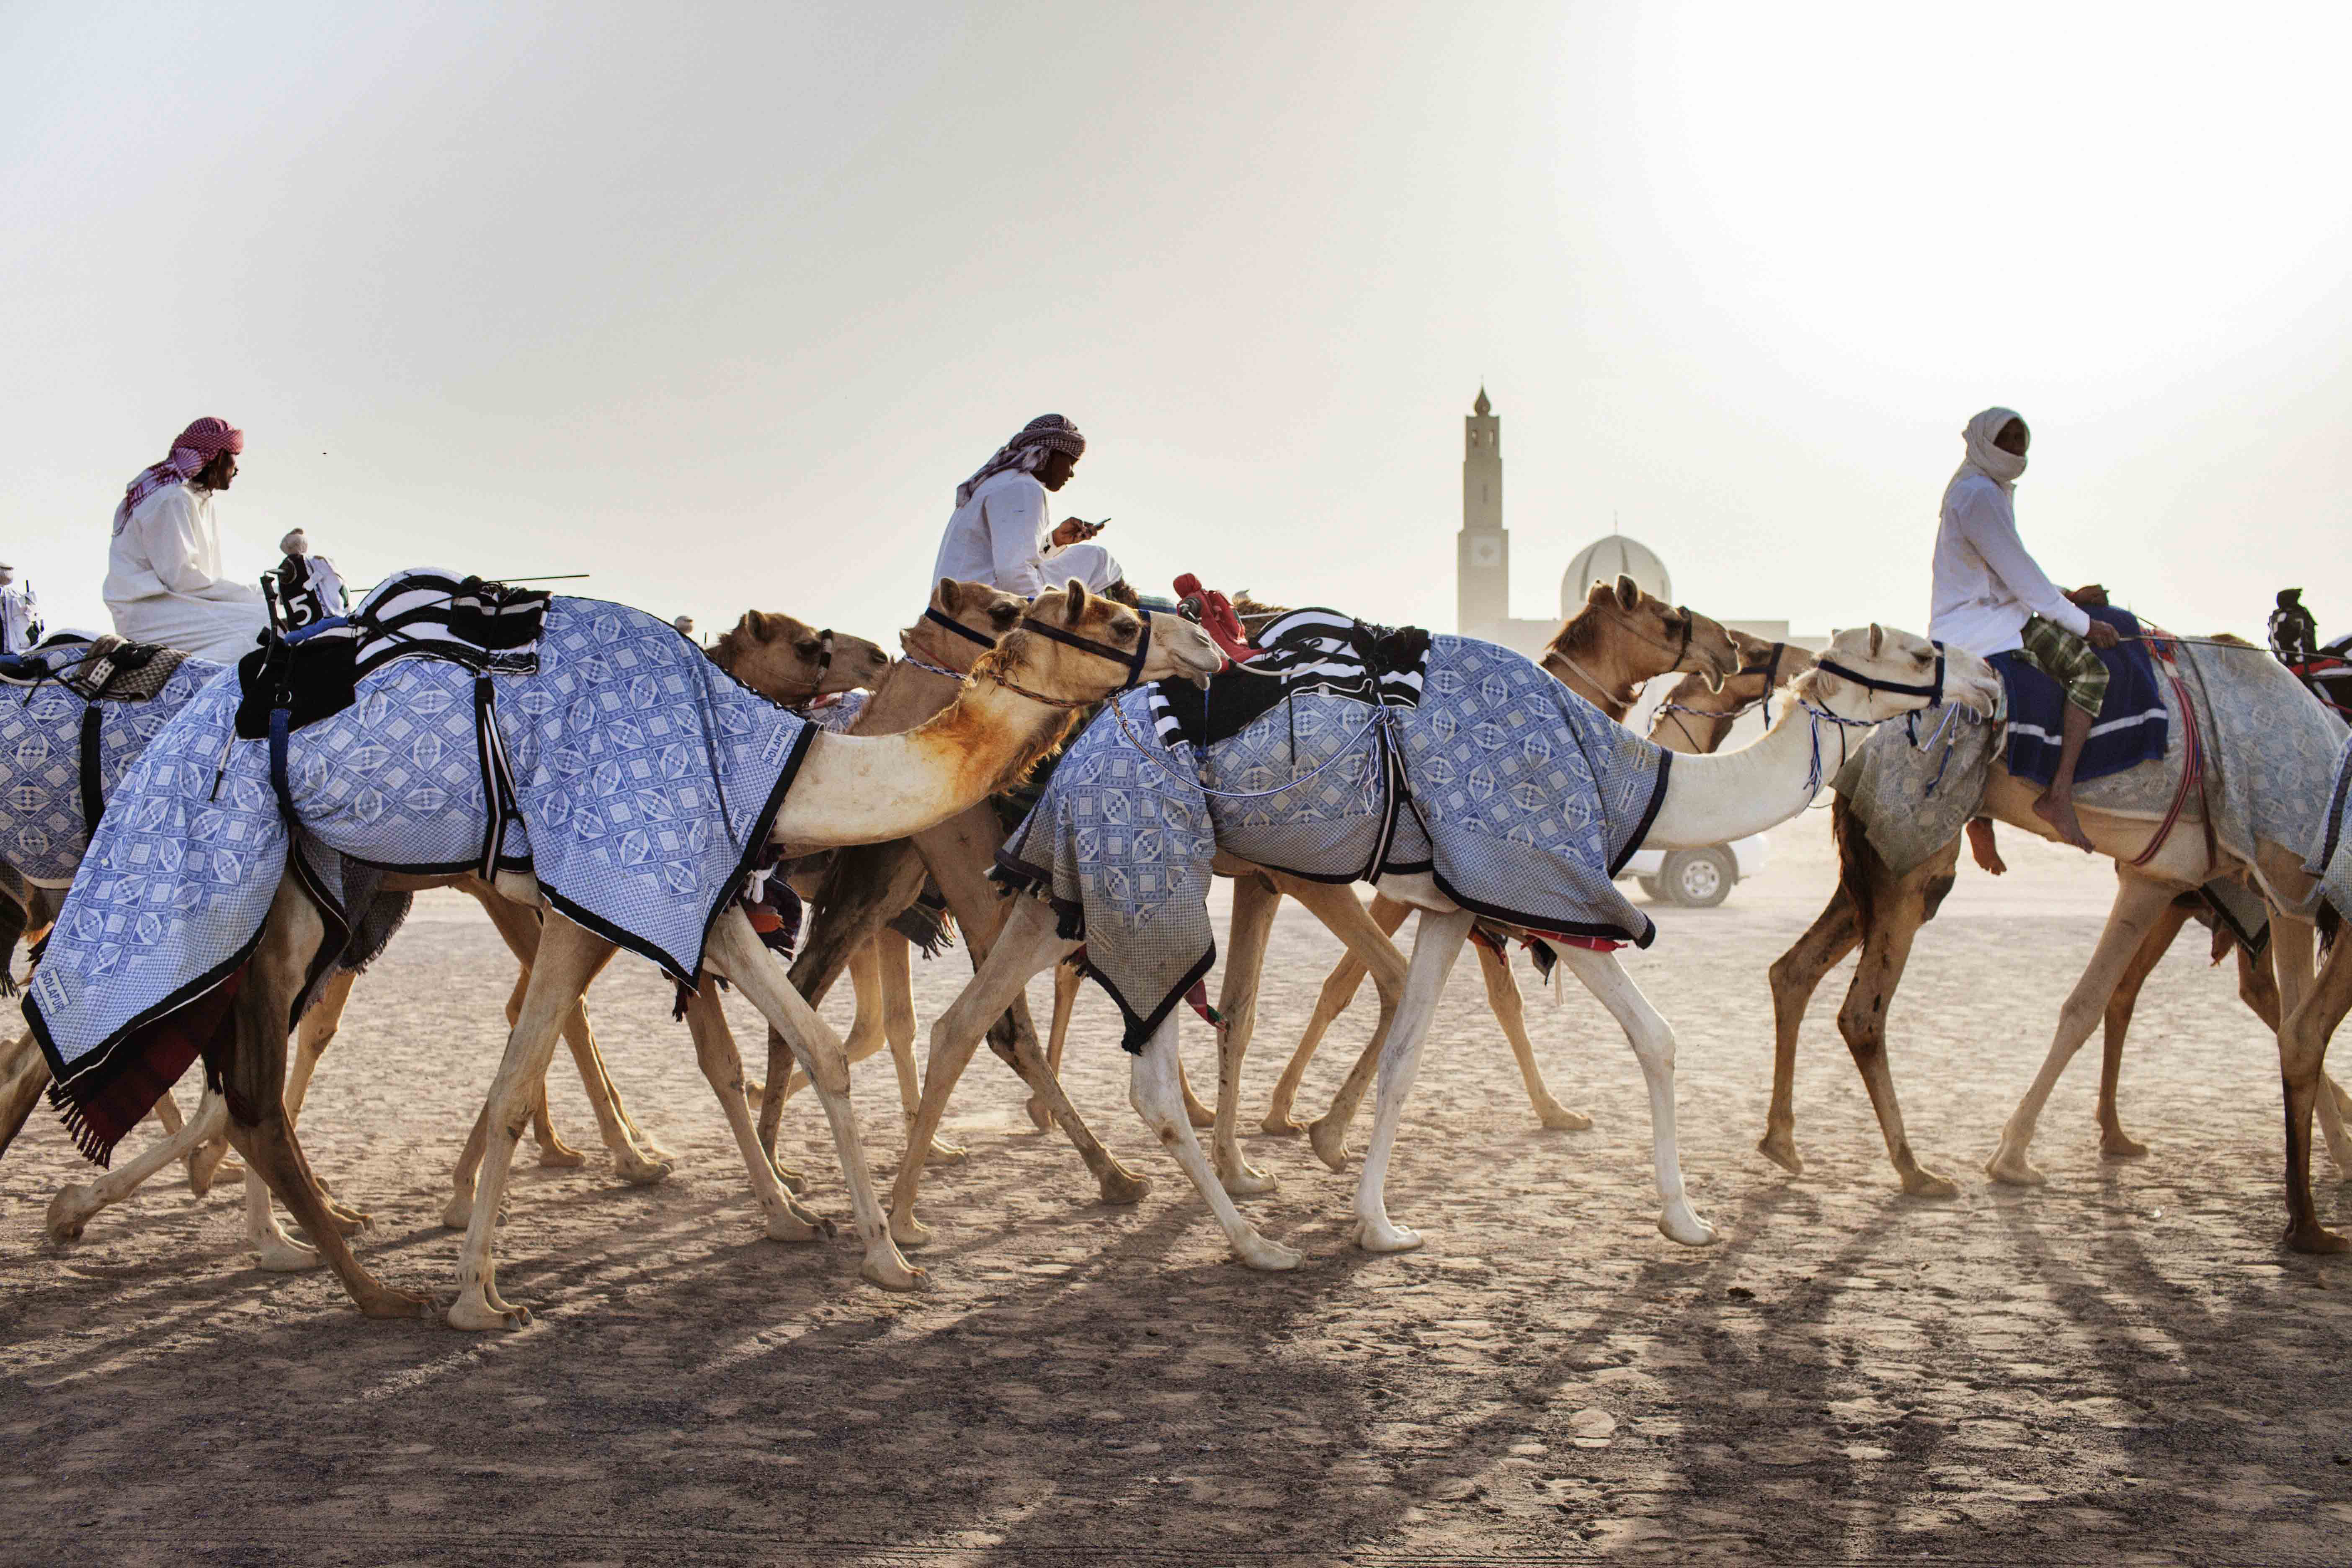 Visitors to Dubai will have the opportunity to ride camels.